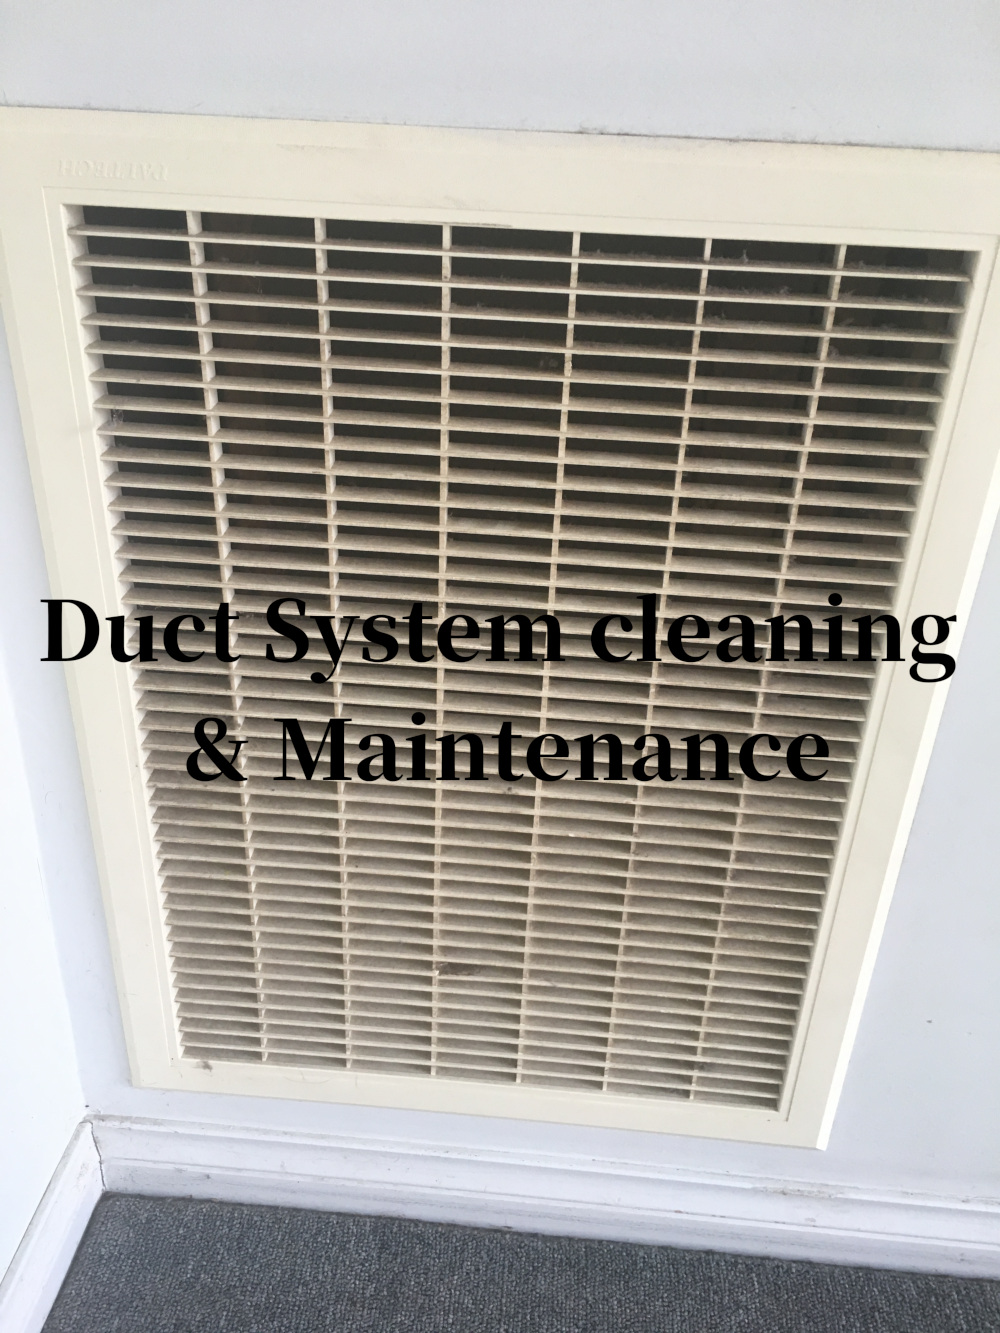 duct system cleaning maintenance